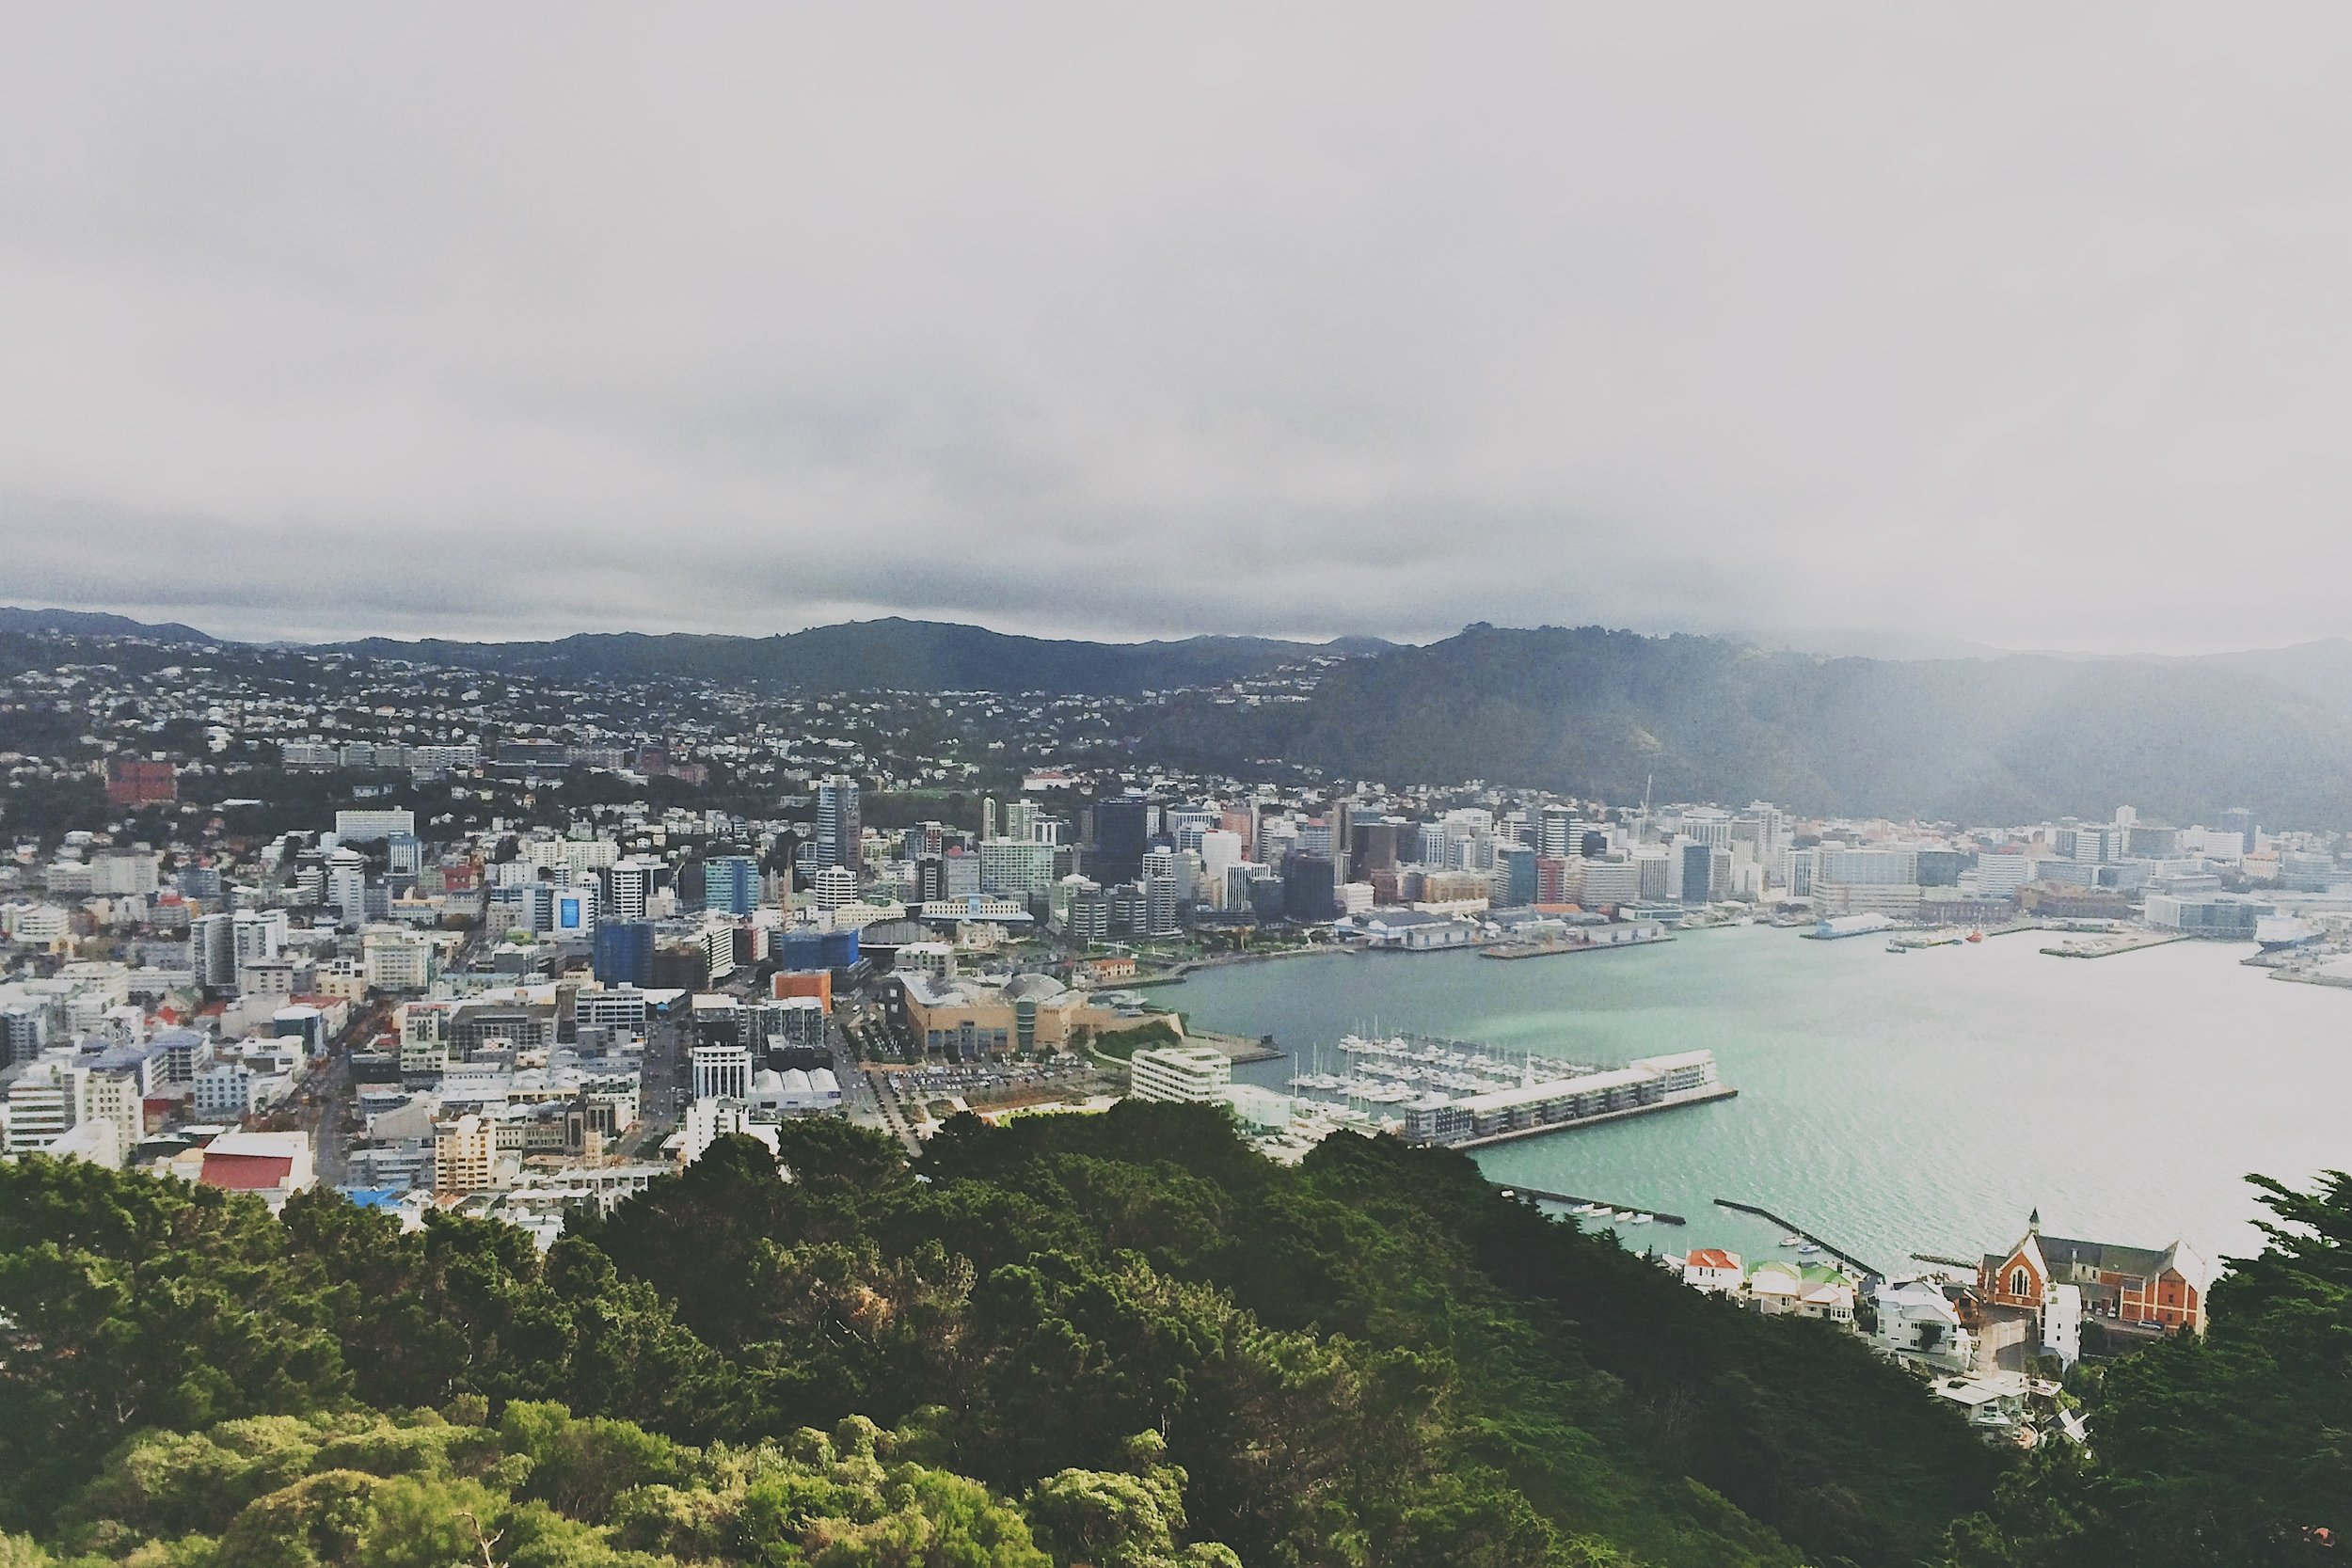 Wellington - Wednesday 28th August